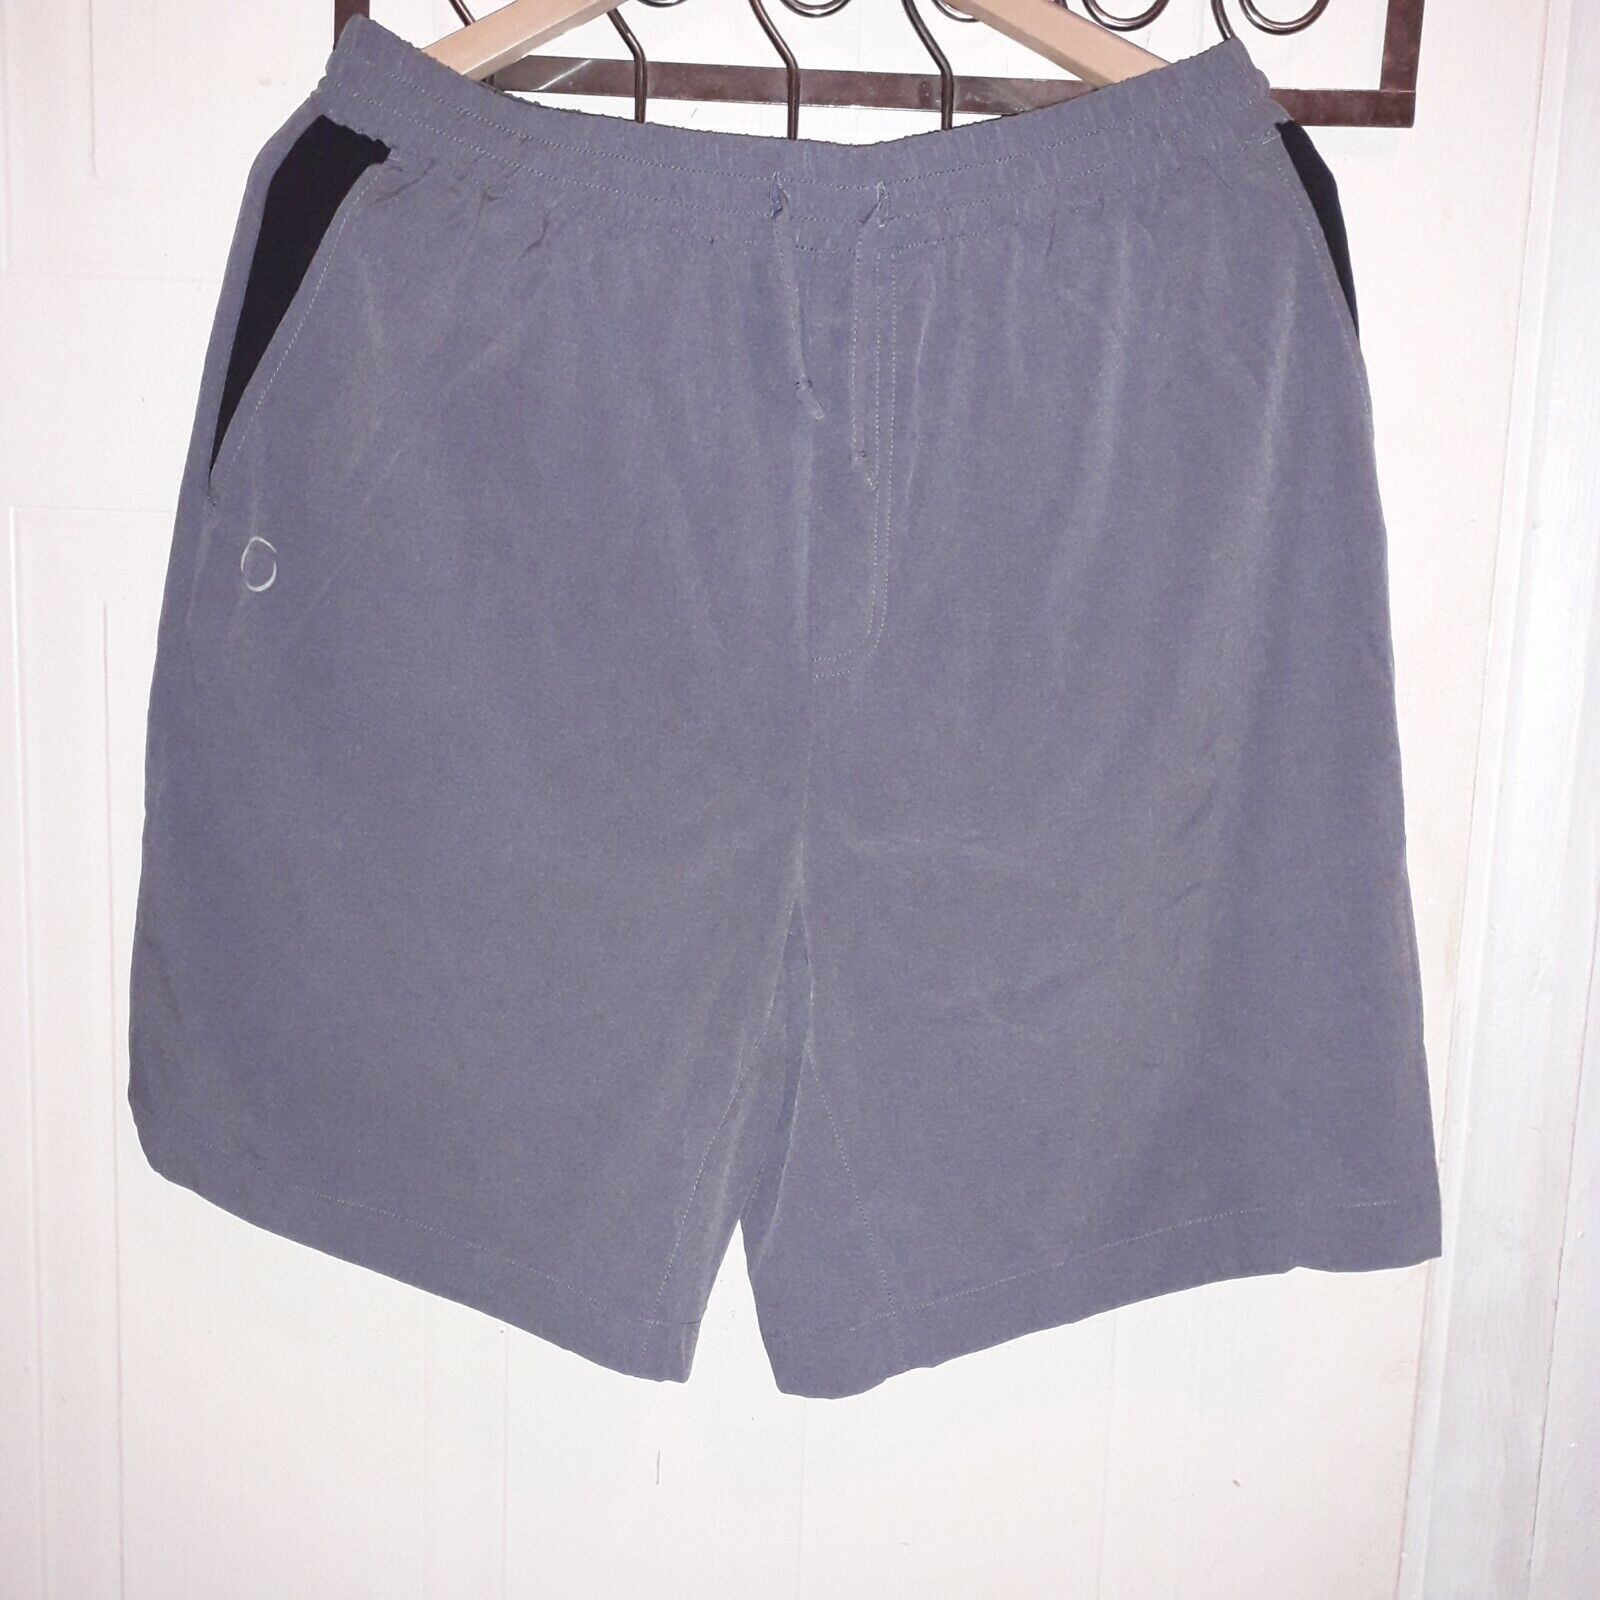 Ohmme Warrior II Lined Yoga Shorts - grey.size  L